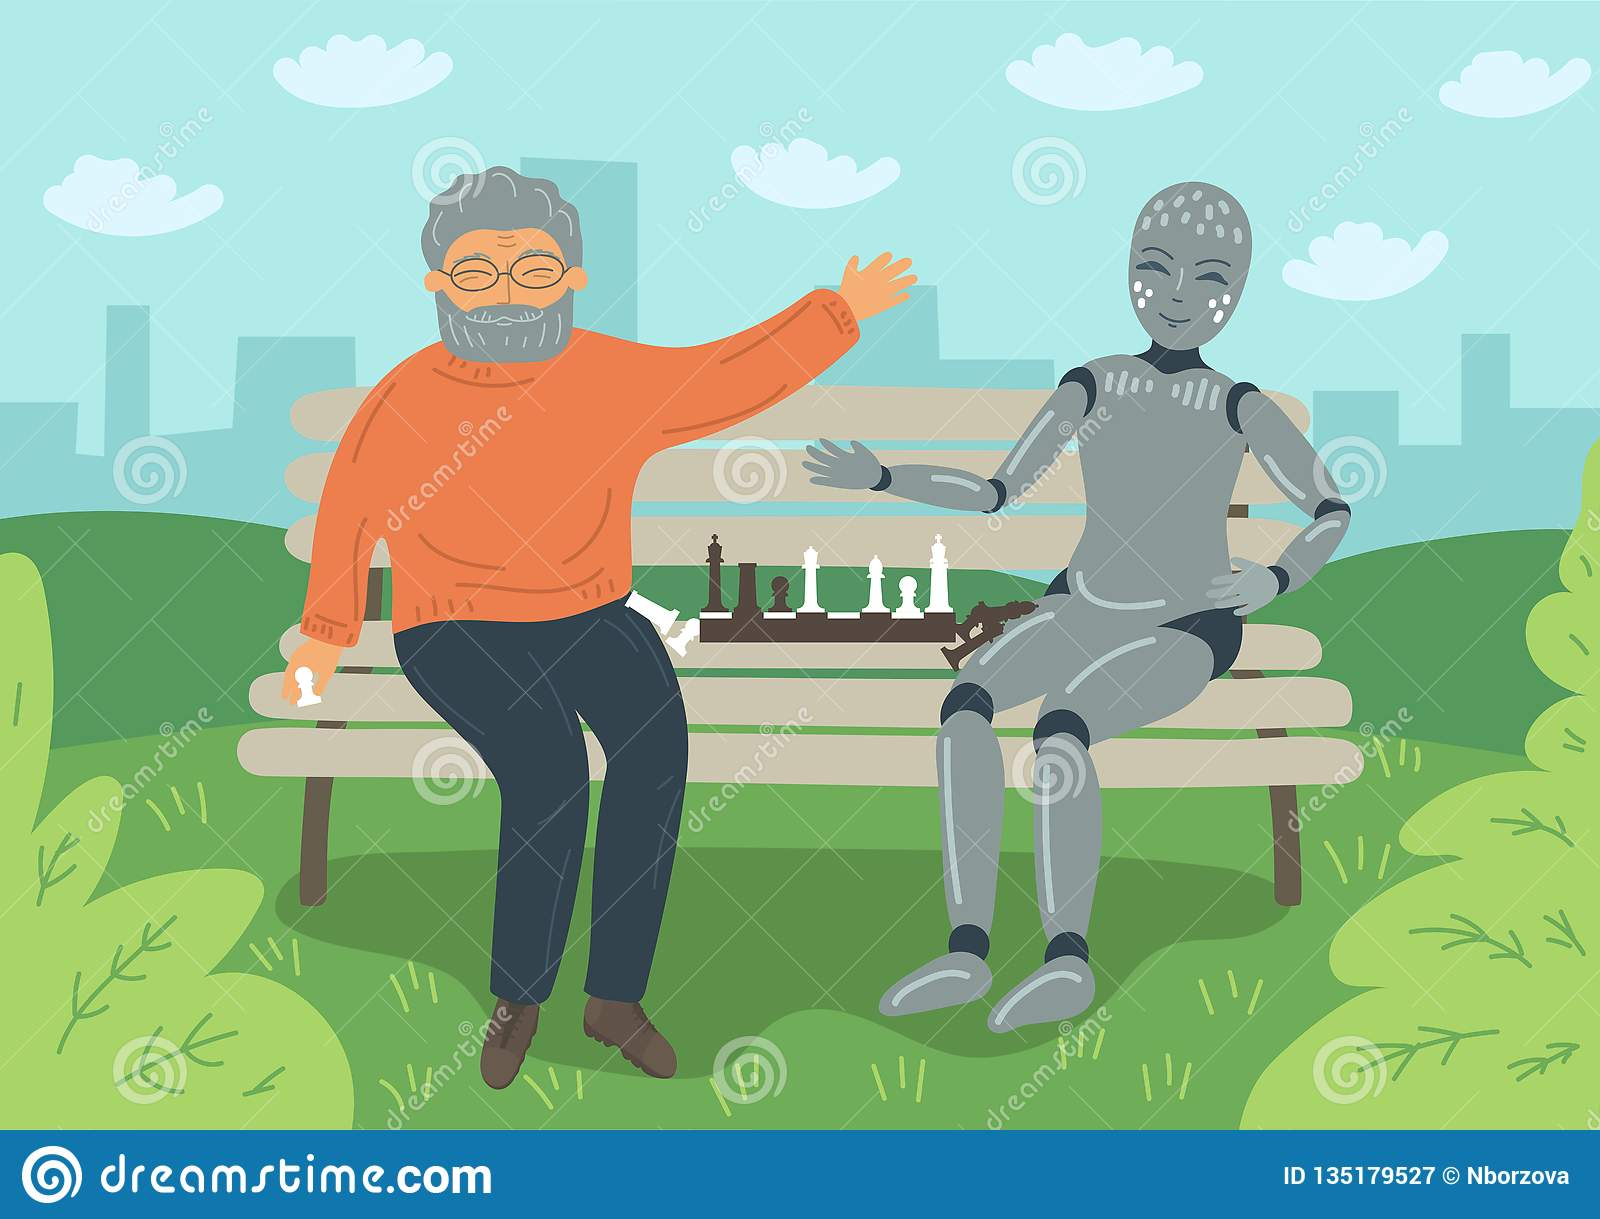 Senior man playing chess with robot on the bench outdoors.